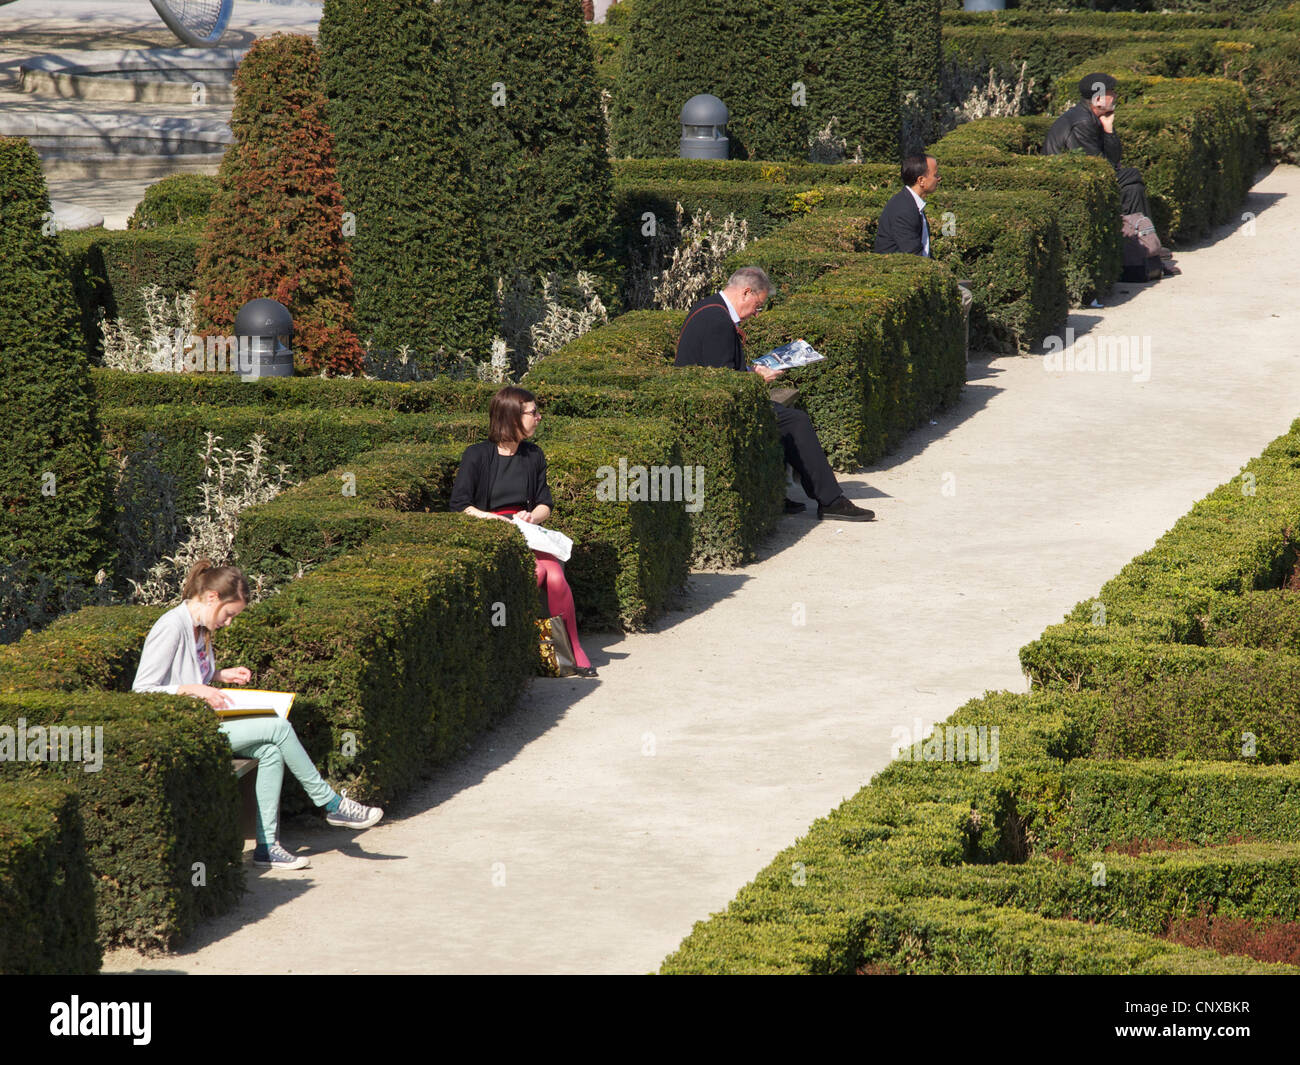 People reading in the Kunstberg park, Brussels city center, Belgium - Stock Image